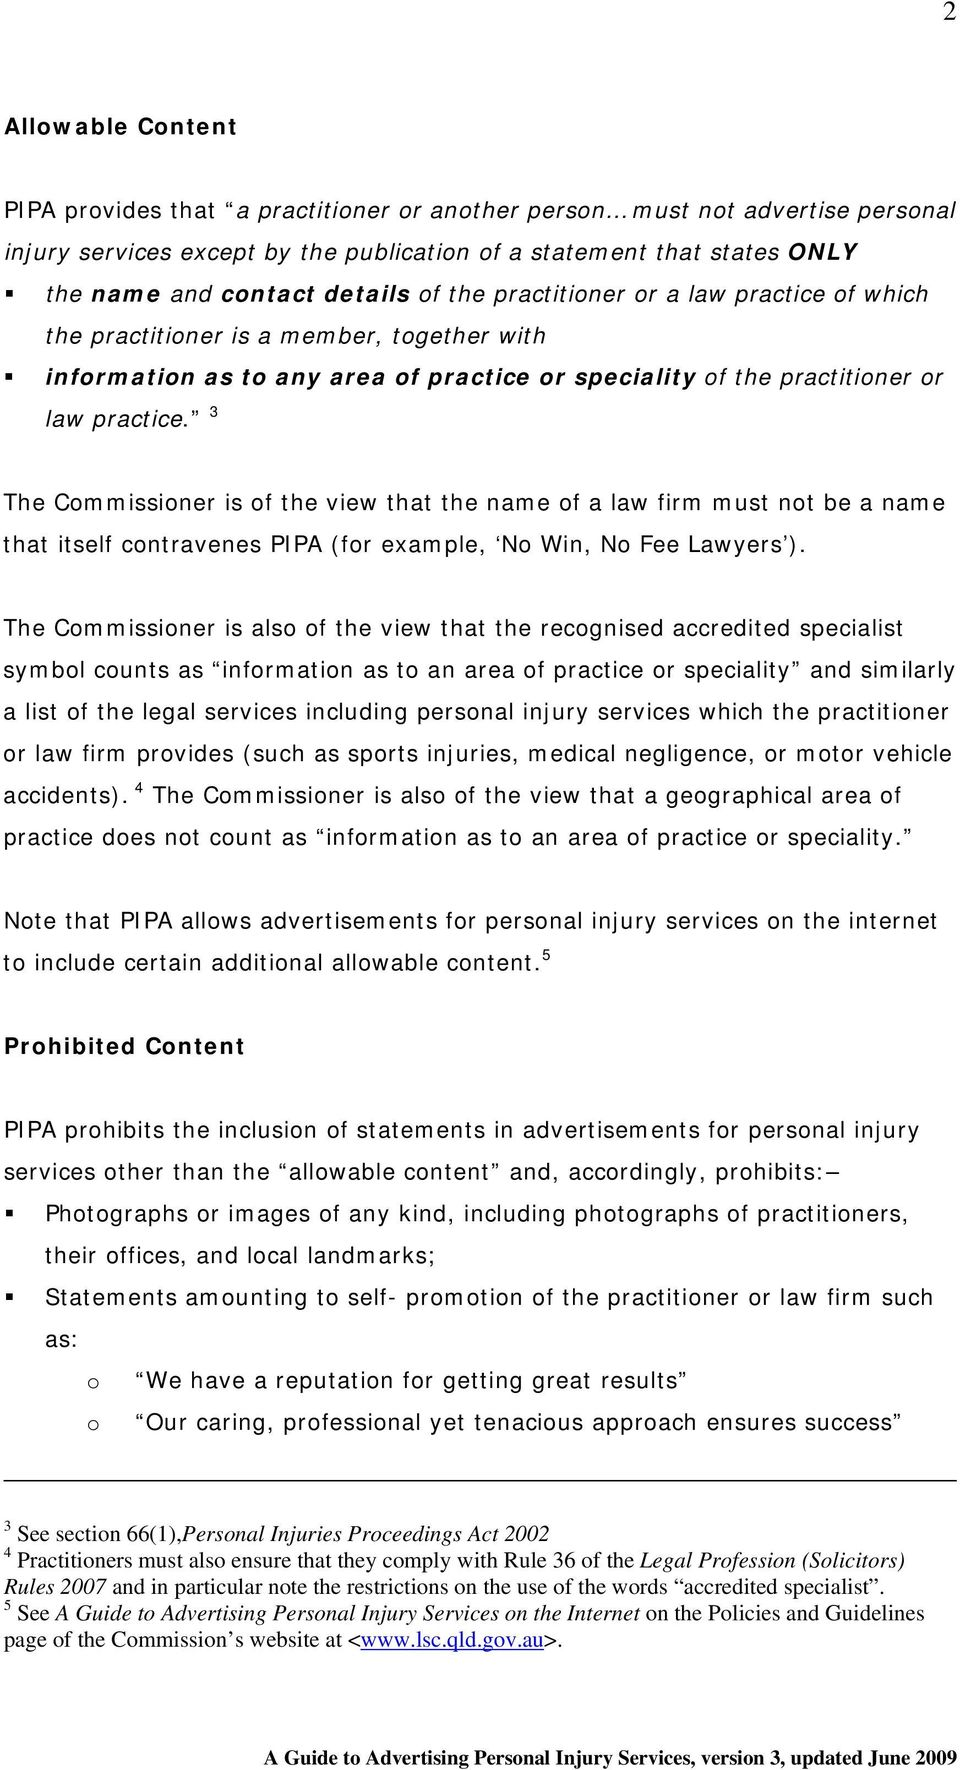 3 The Commissioner is of the view that the name of a law firm must not be a name that itself contravenes PIPA (for example, No Win, No Fee Lawyers ).